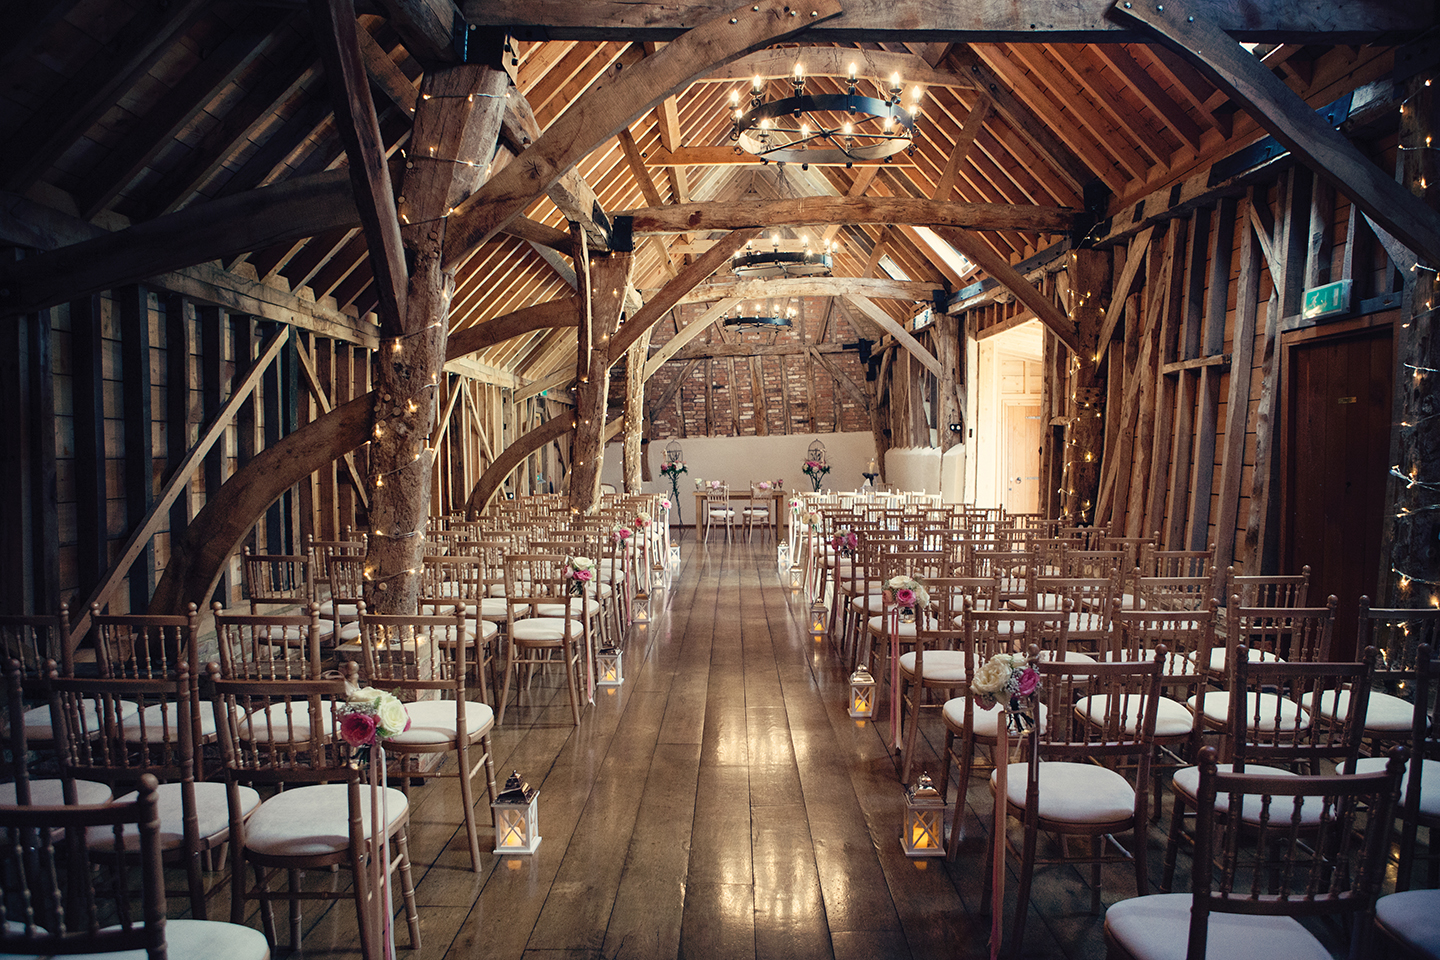 The Rickety Barn at Bassmead Manor Barns wedding venue is set up for a rustic wedding ceremony